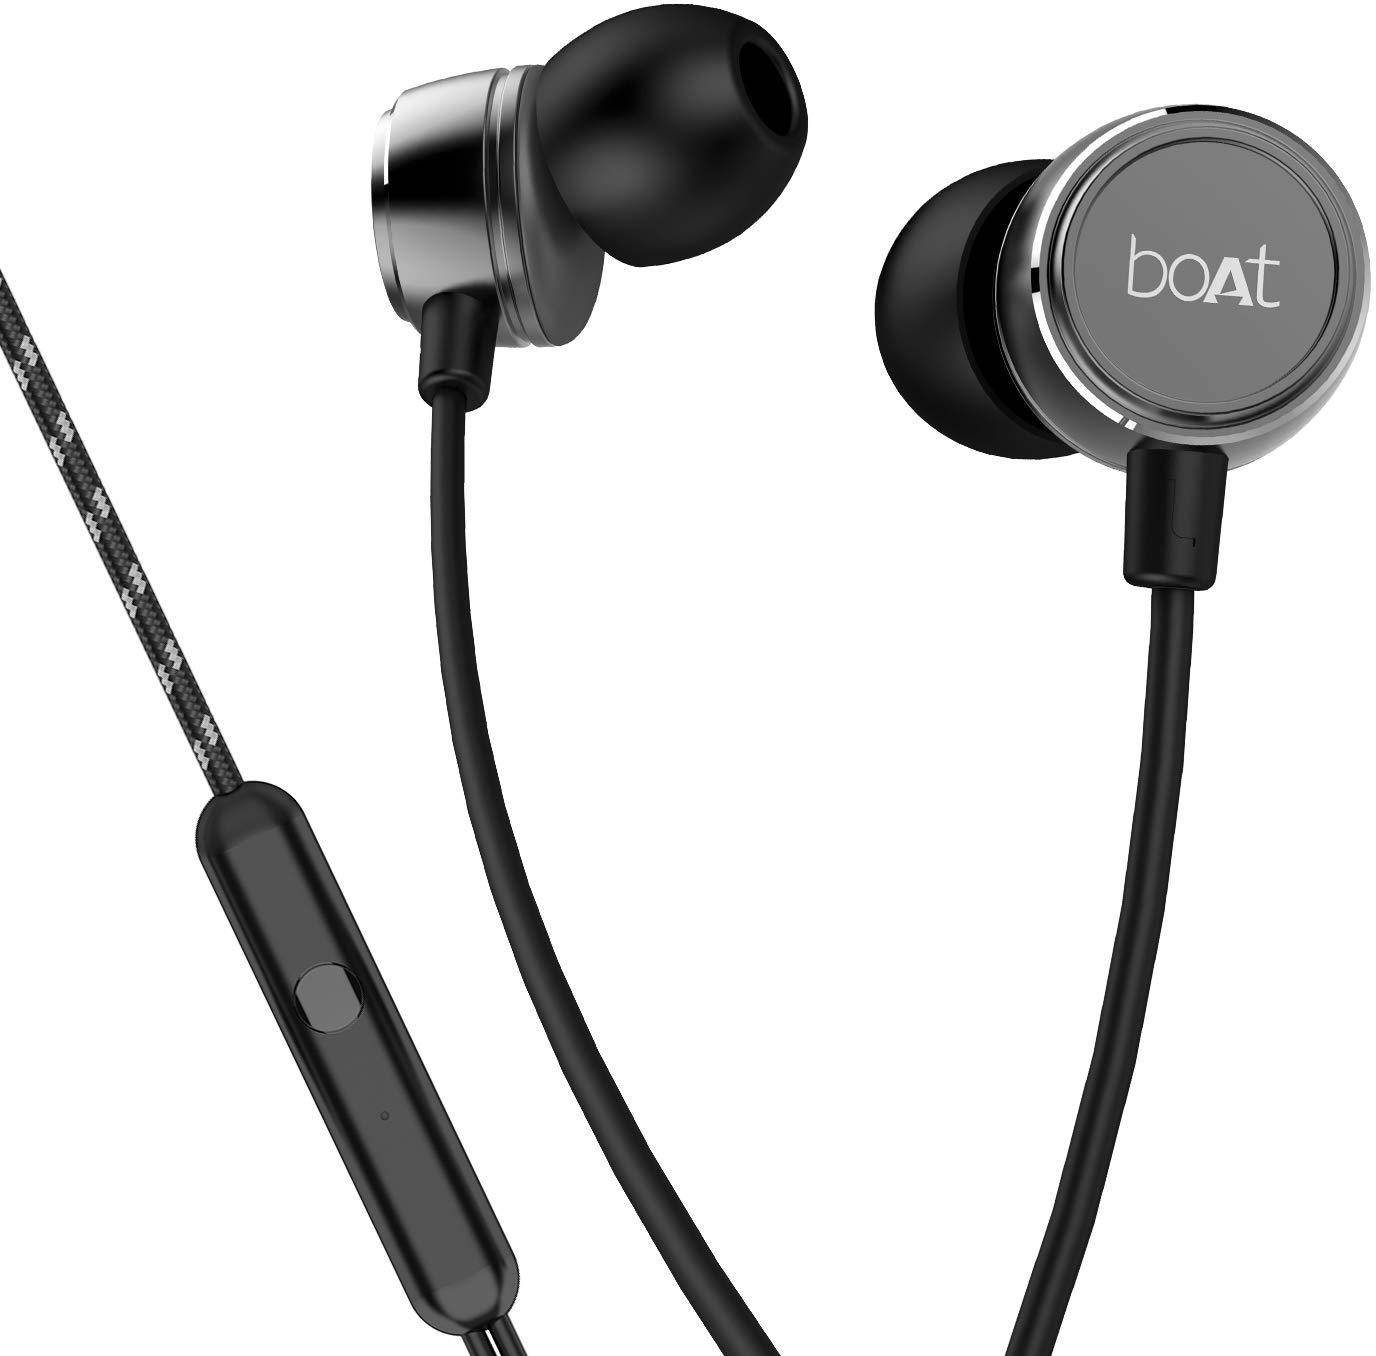 boAt BassHeads 172 with HD Sound, in-line mic, Dual Tone Secure Braided Cable & 3.5mm Angled Jack Wired Earphones  zoom image